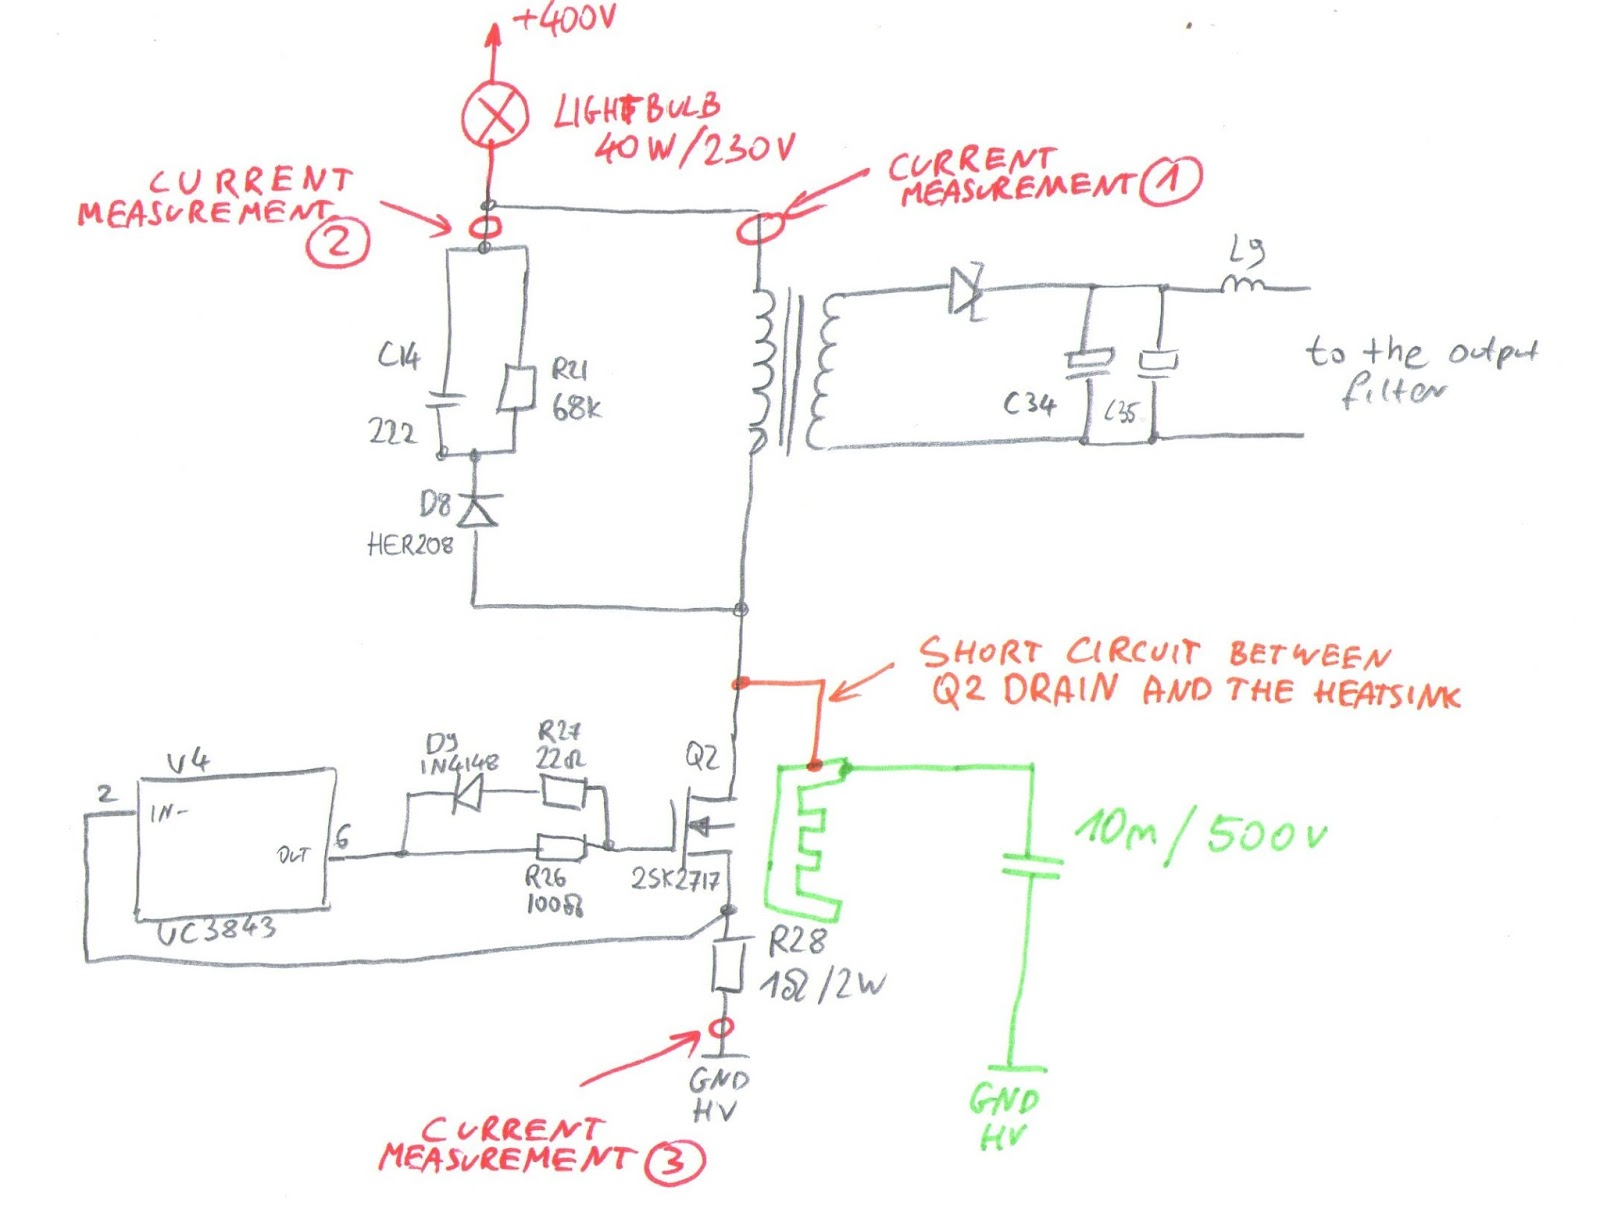 extech wiring diagrams electronics engineering notes voltrcraft lsp 1403  electronics engineering notes voltrcraft lsp 1403